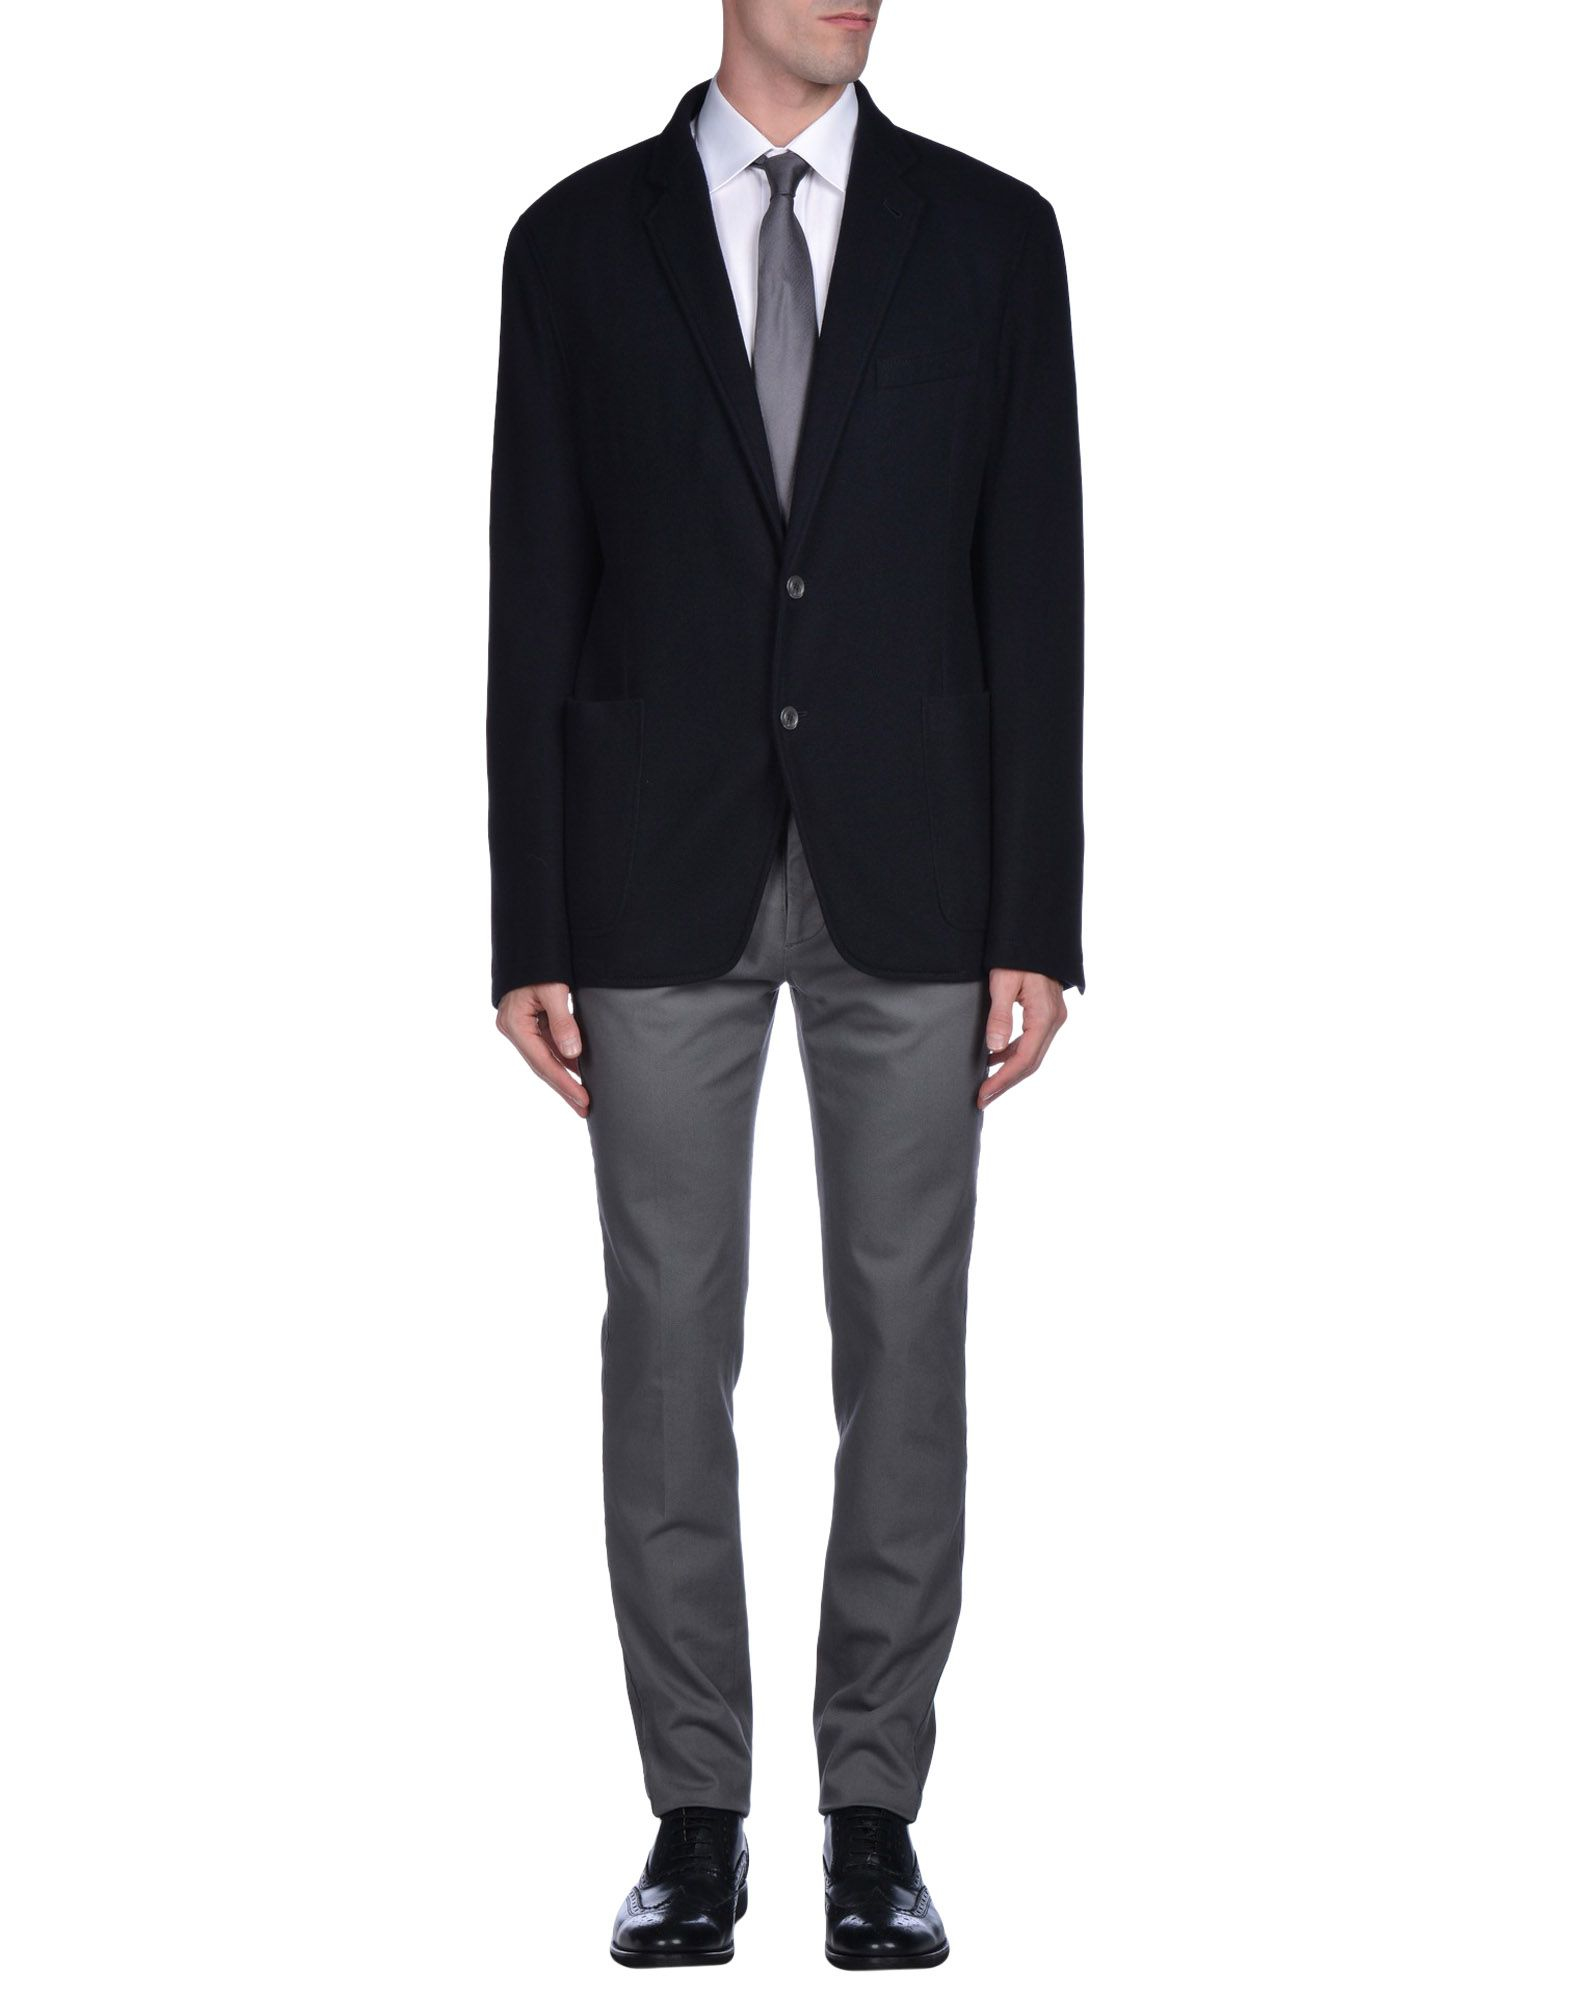 bonner black single men Shop online the latest fw18 collection of fendi for men on ssense and find the perfect clothing  fendi black high waist single pleat  wales bonner wooyoungmi.